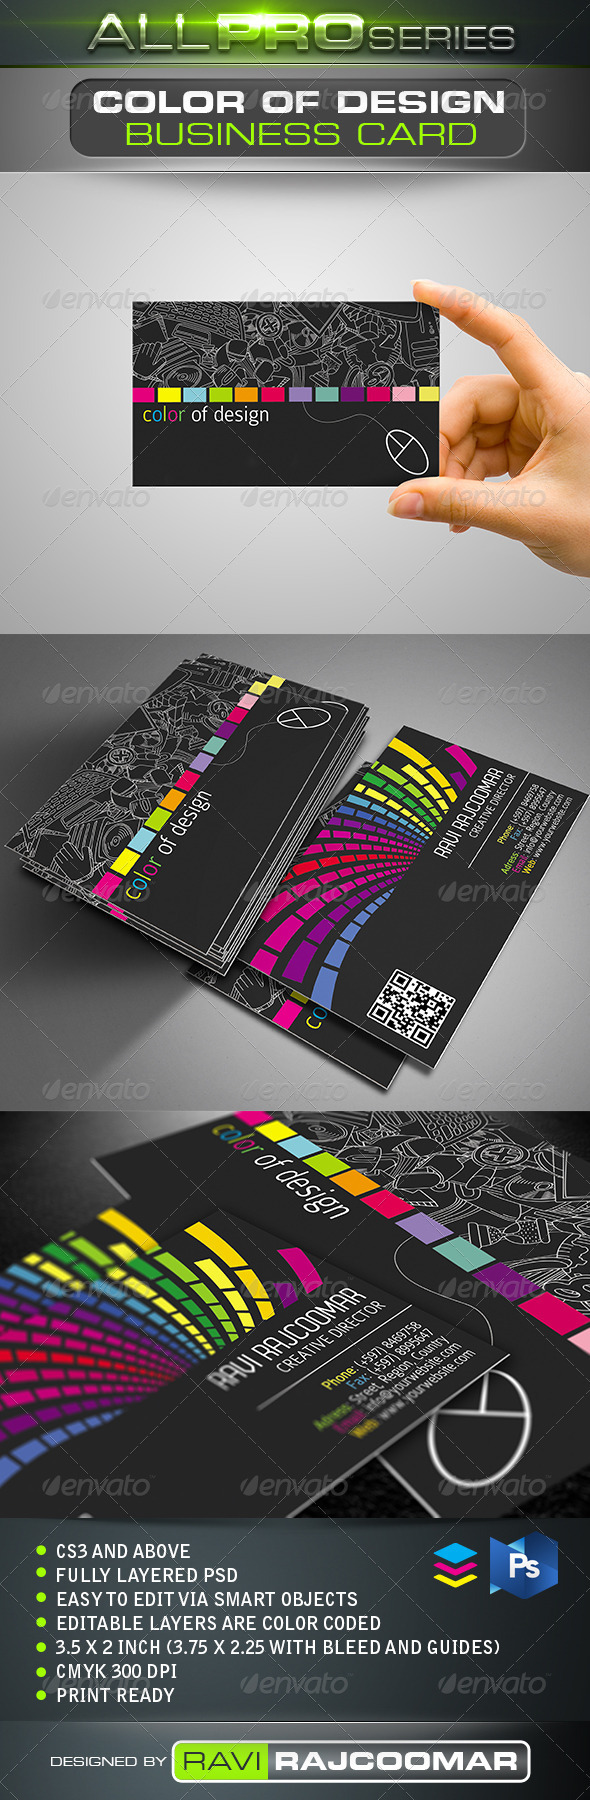 Color of Design Business Card - Business Cards Print Templates